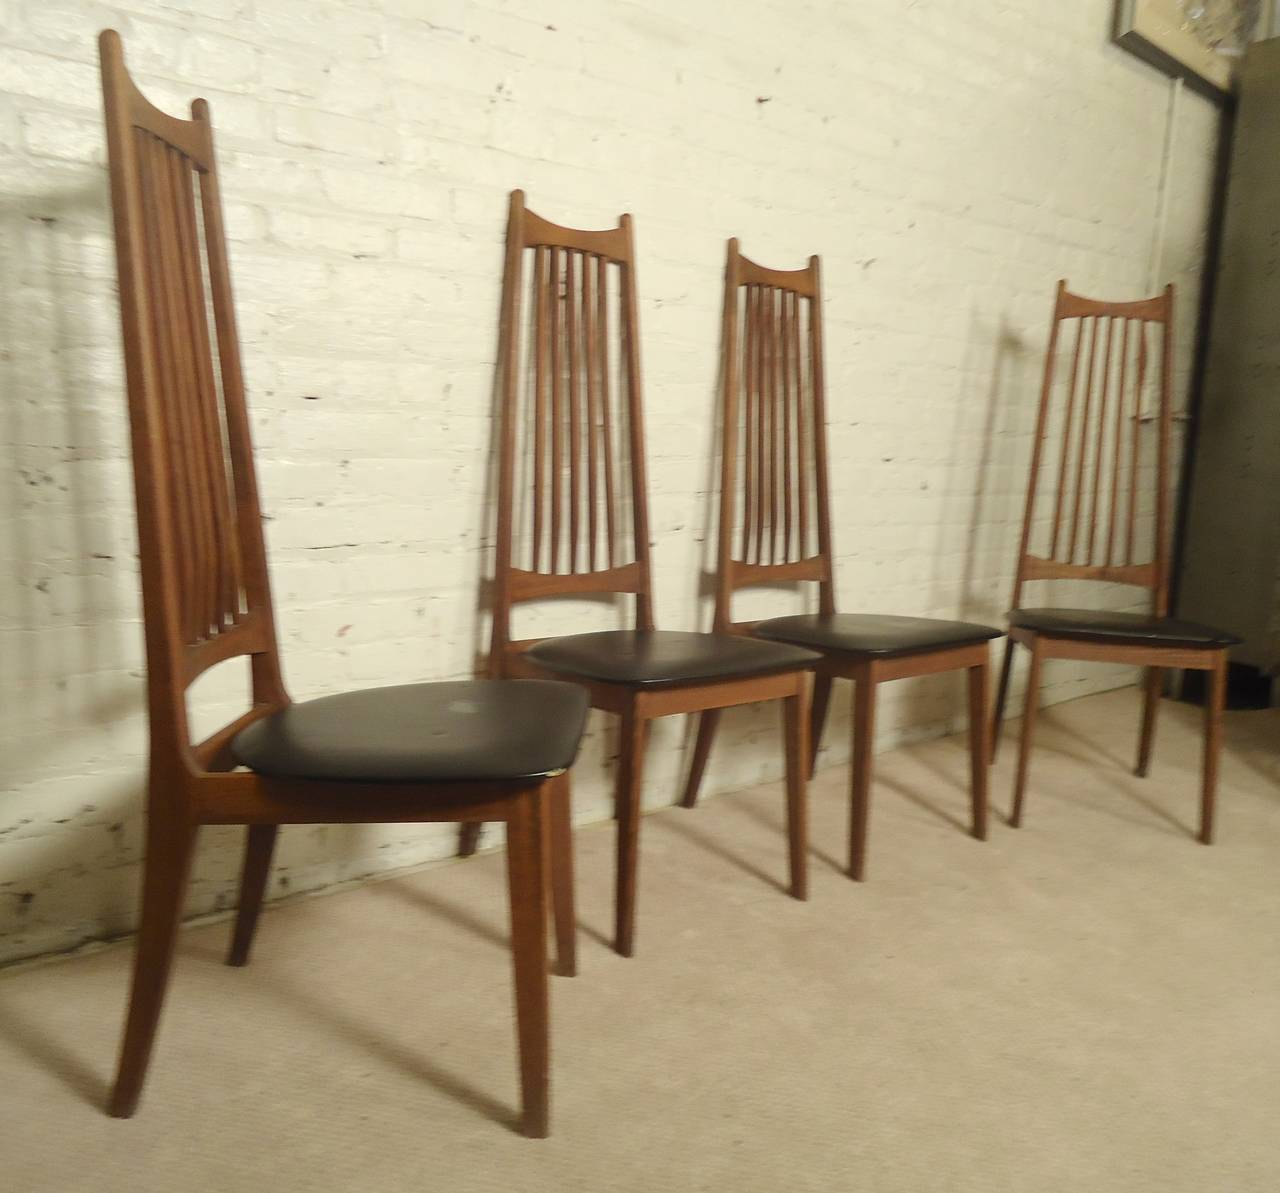 Vintage modern slat back chairs with exaggerated walnut frame. Sculpted slats, black vinyl seats.  (Please confirm item location - NY or NJ - with dealer)